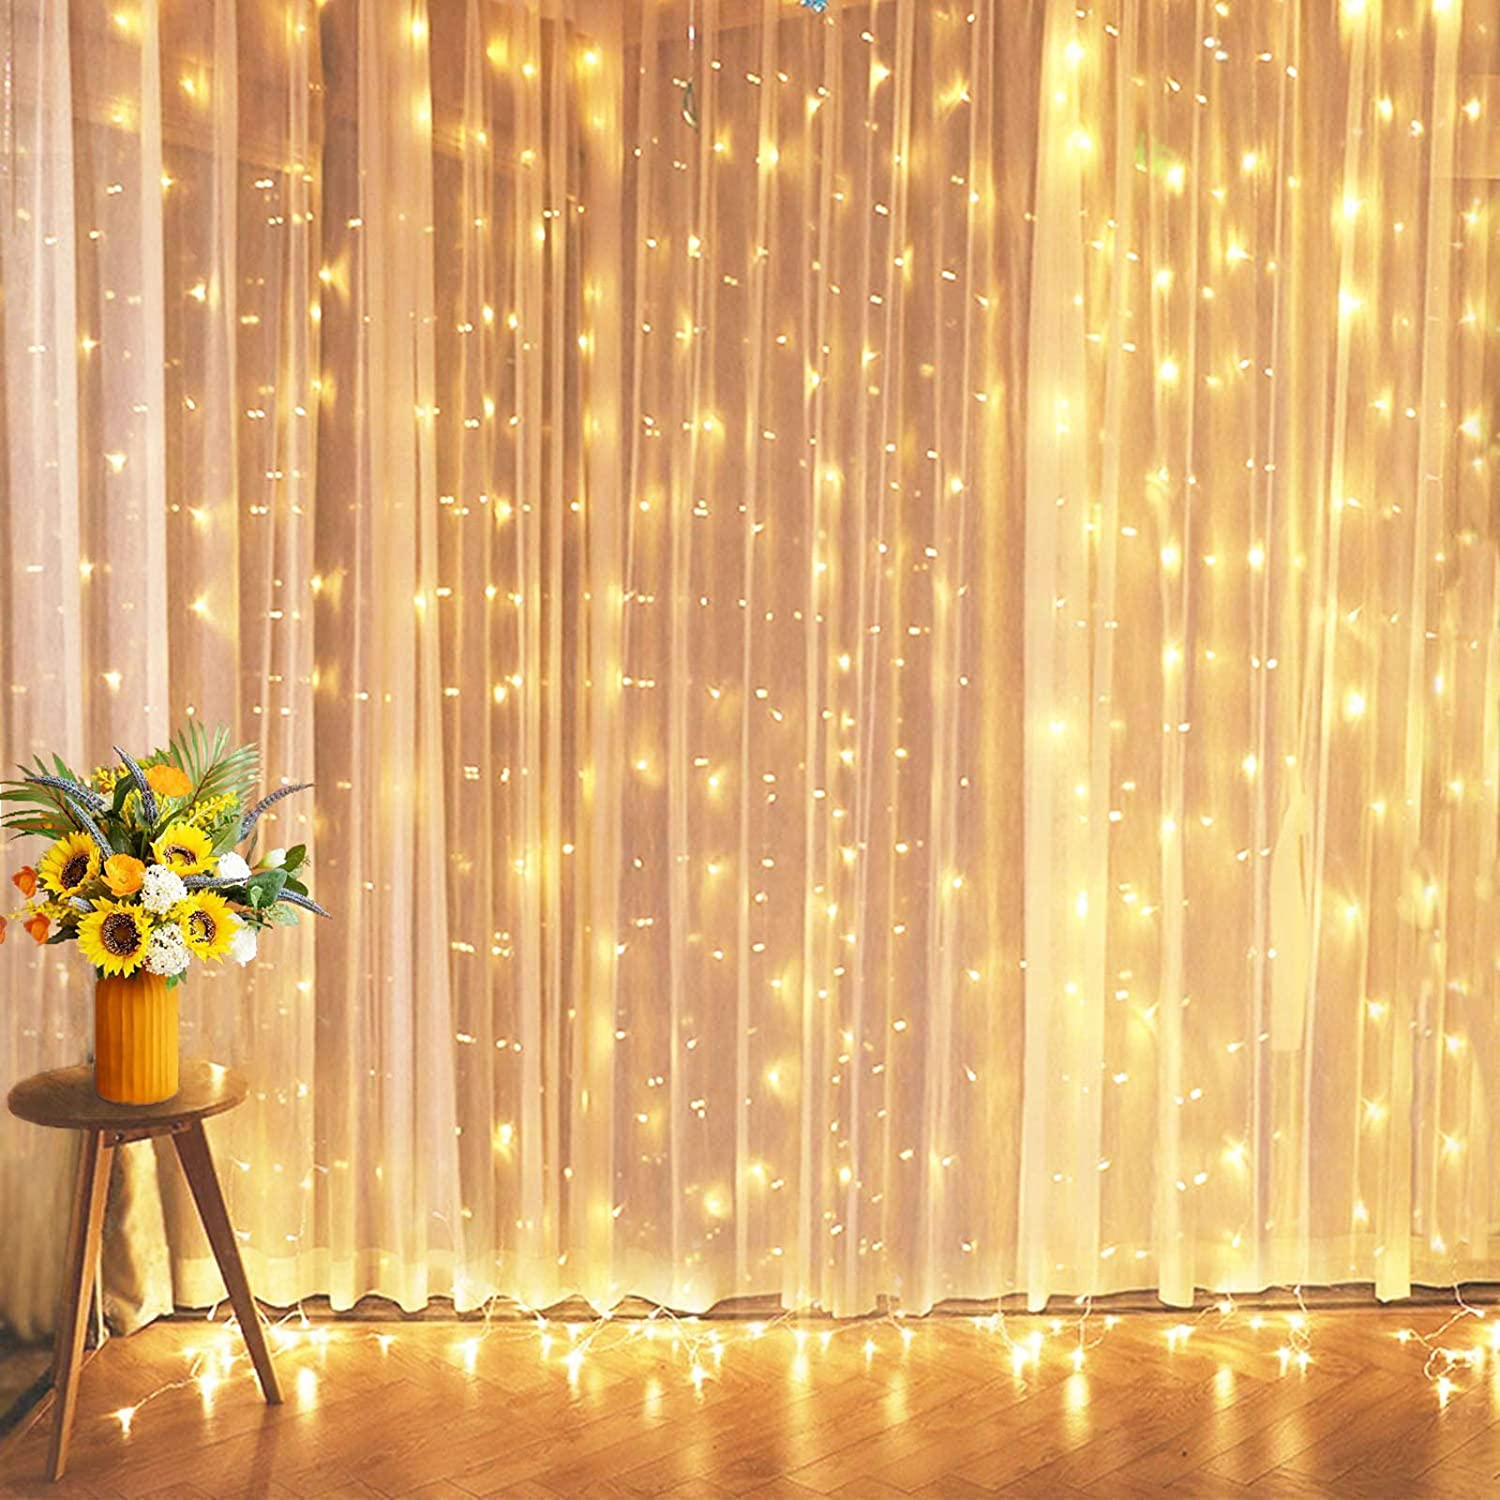 10ft 300 LED Xmas Window Curtain String Lights 8 Modes Party Wedding Wall Decor